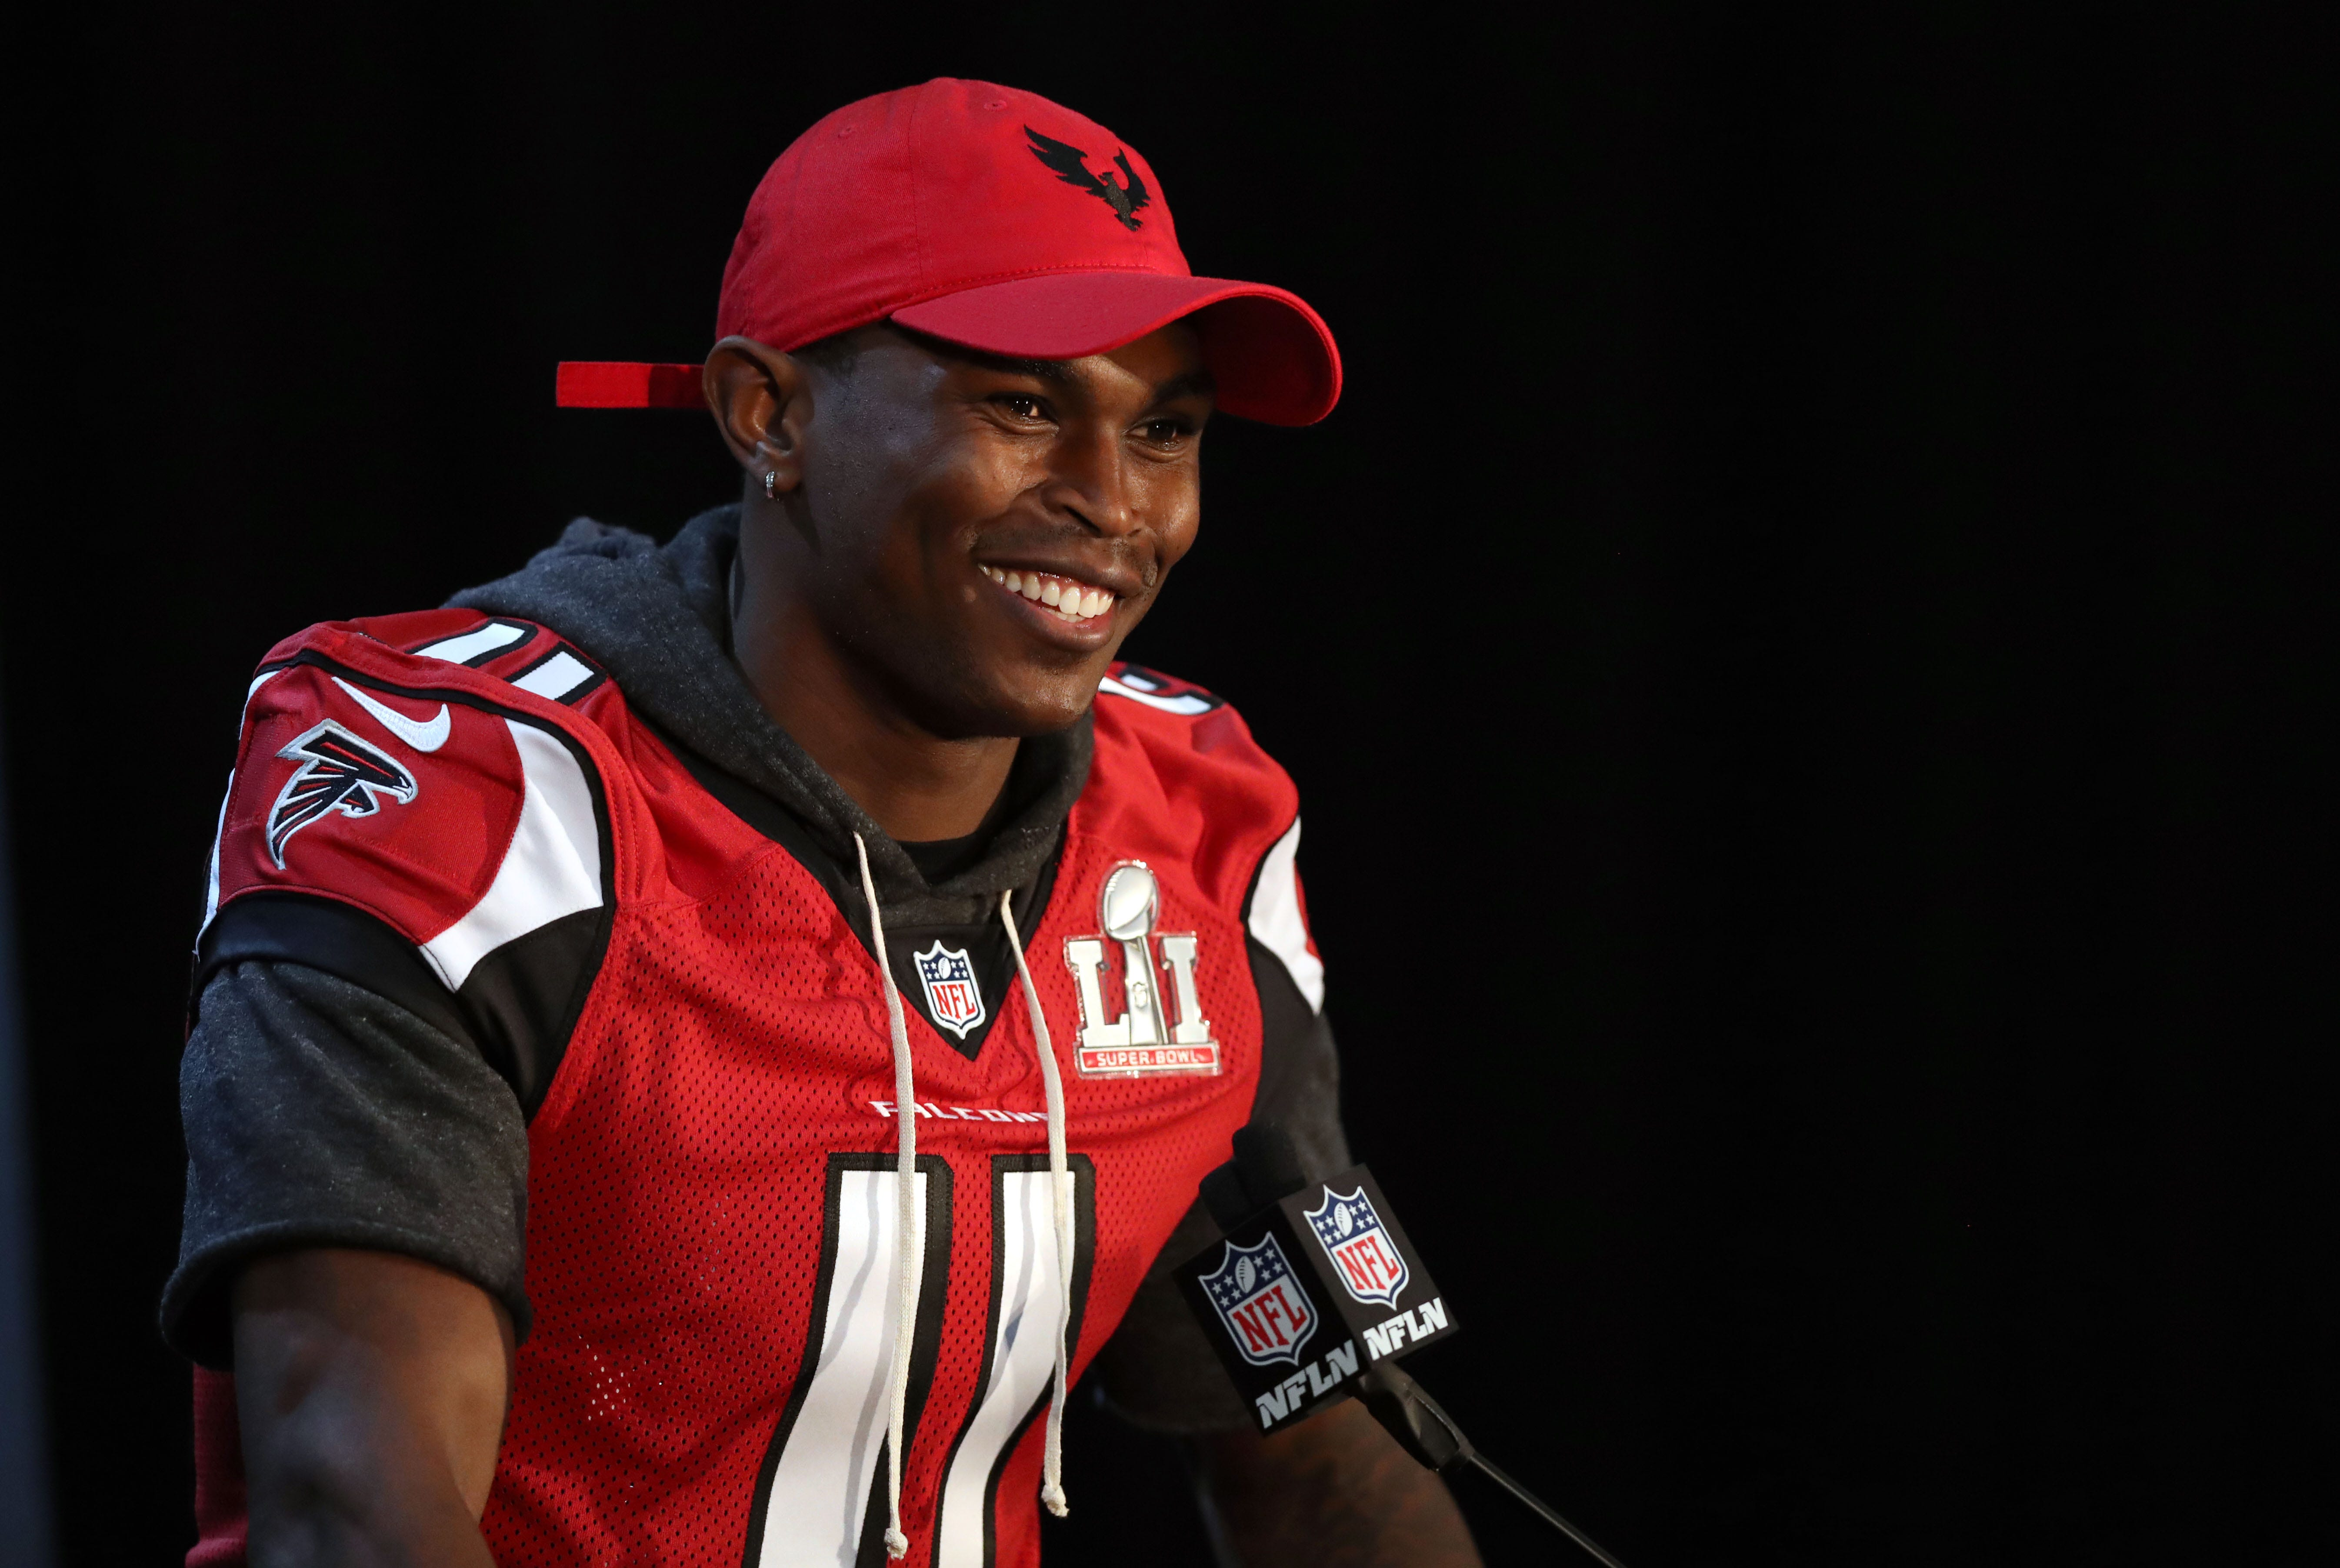 Falcons' Julio Jones hires dive team to find $100K earring lost while jet skiing